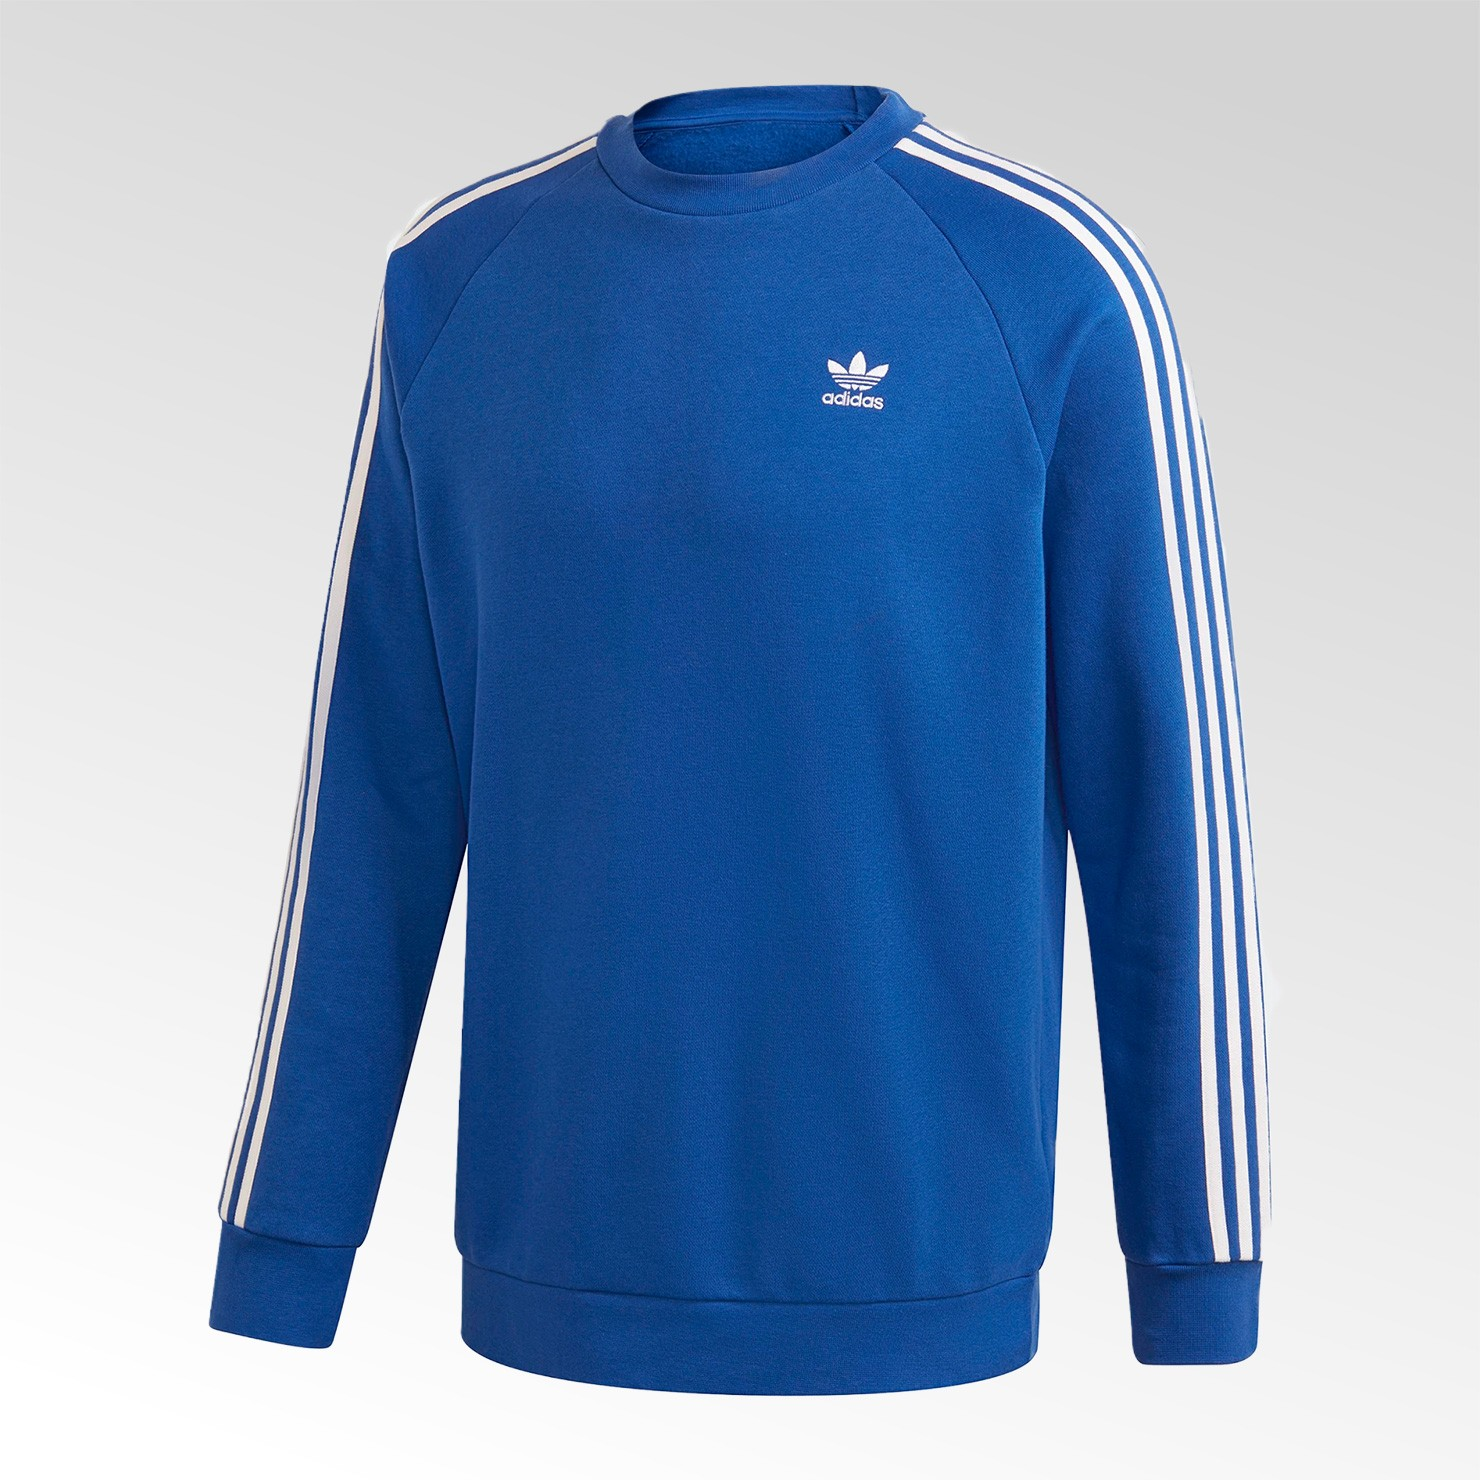 Bluza męska Adidas Essentials 3-Stripes Crew - GD9947